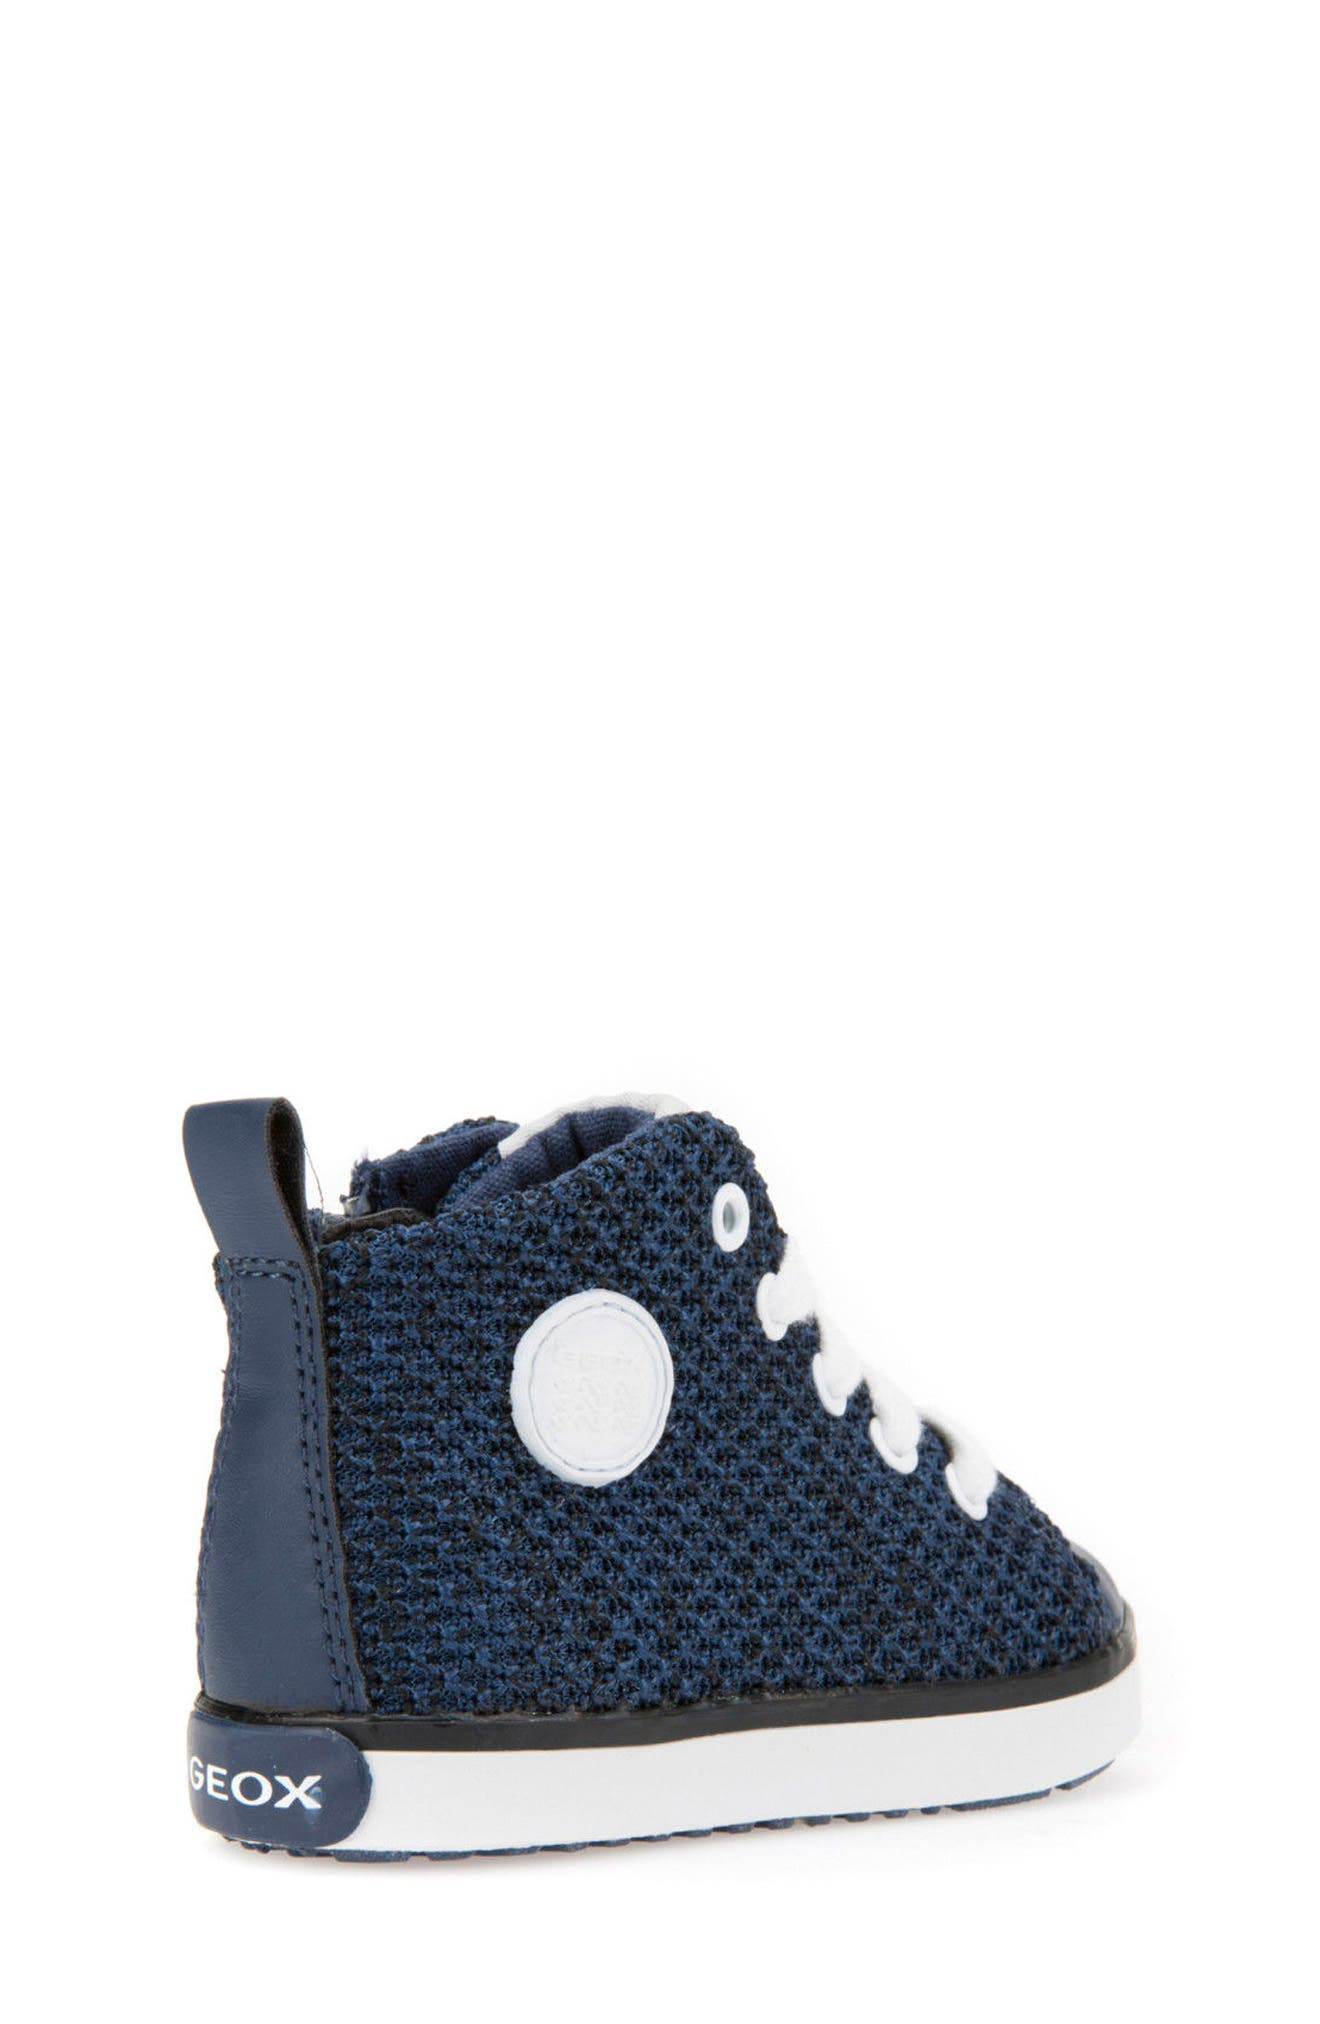 Kilwi Knit High Top Sneaker,                             Alternate thumbnail 2, color,                             Navy